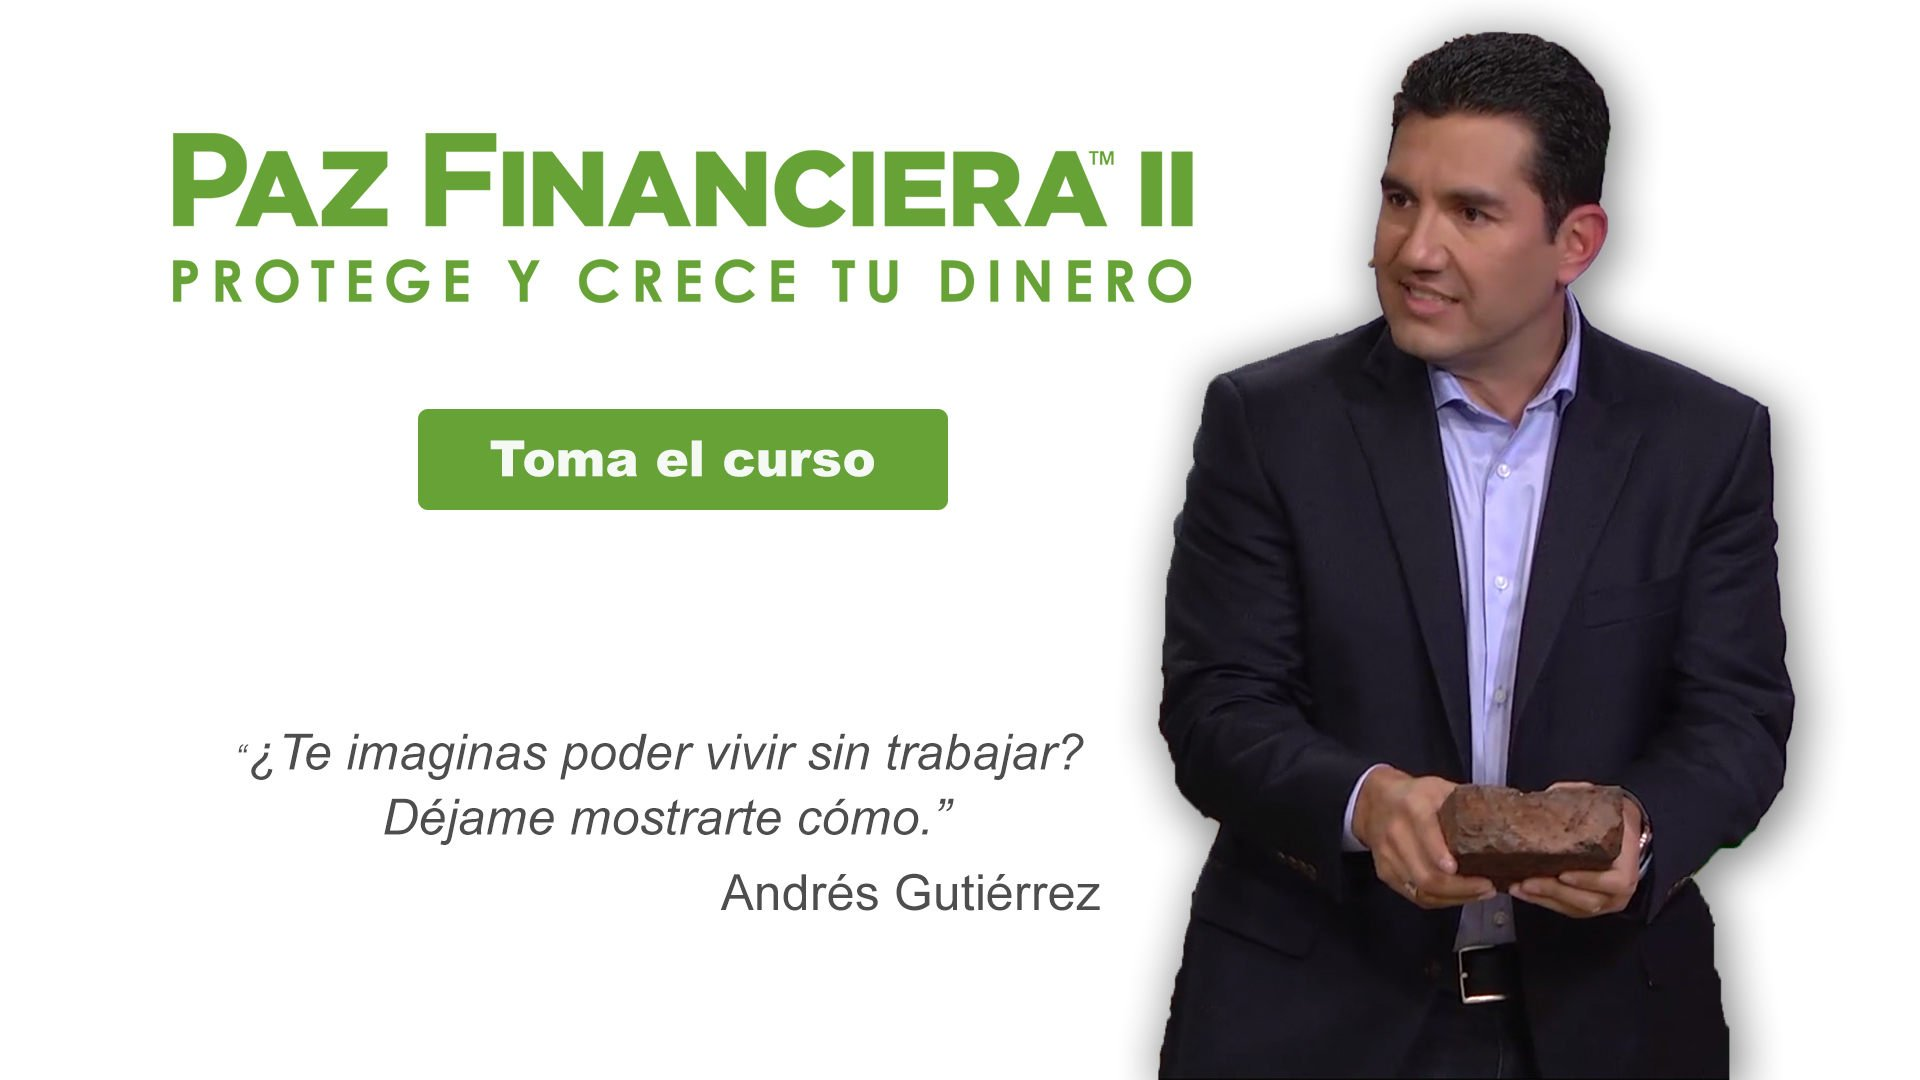 paz financiera ii